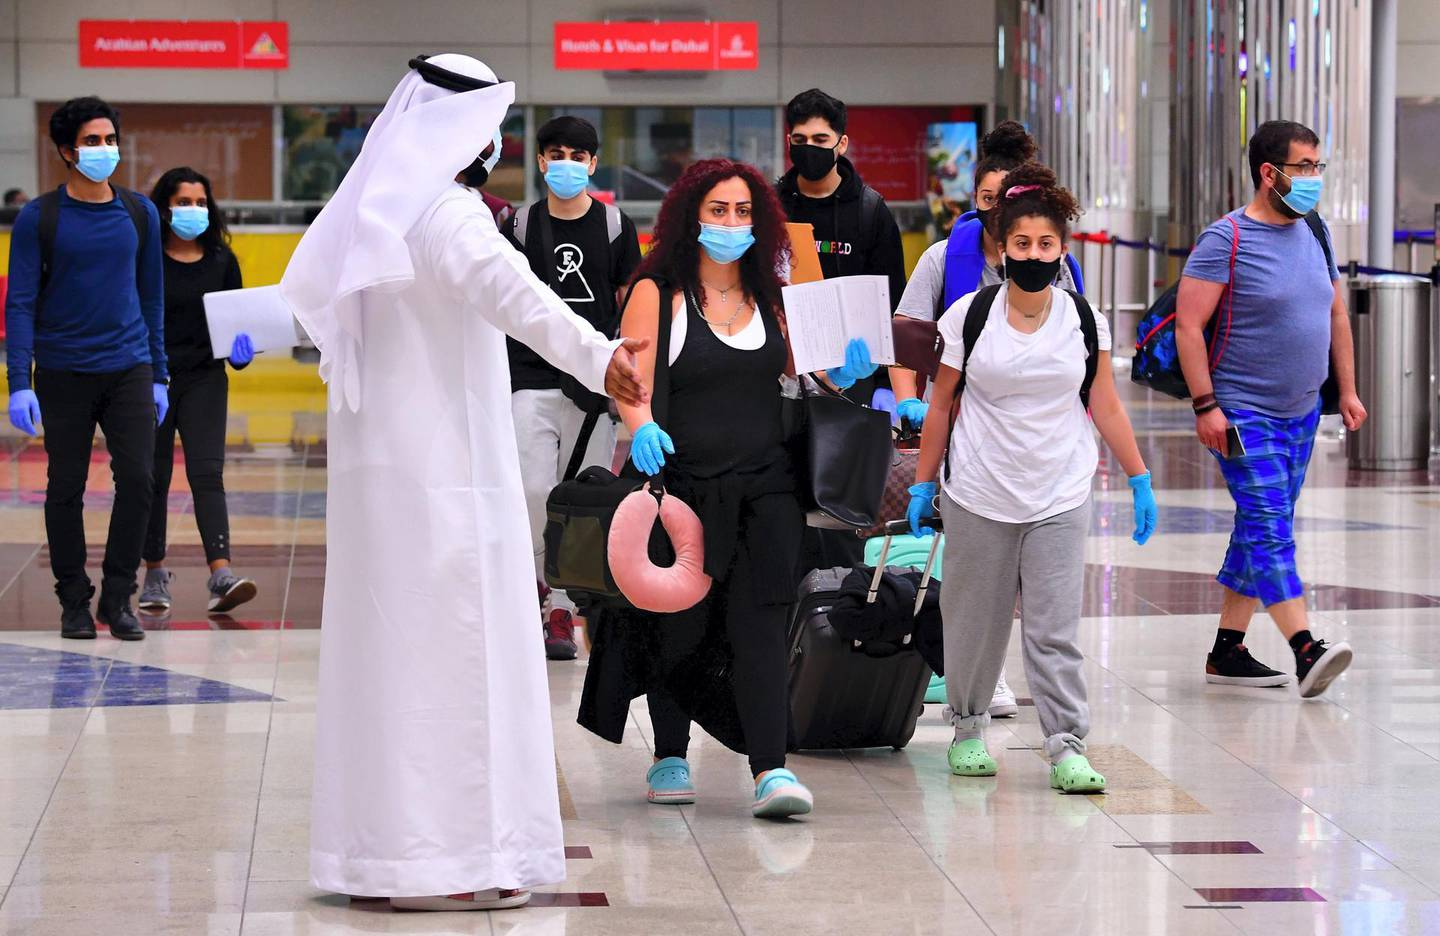 Tourists arrive at Dubai airport in the United Arab Emirates on July 8, 2020, as the country reopened its doors to international visitors in the hope of reviving its tourism industry after a nearly four-month closure. (Photo by GIUSEPPE CACACE / AFP)